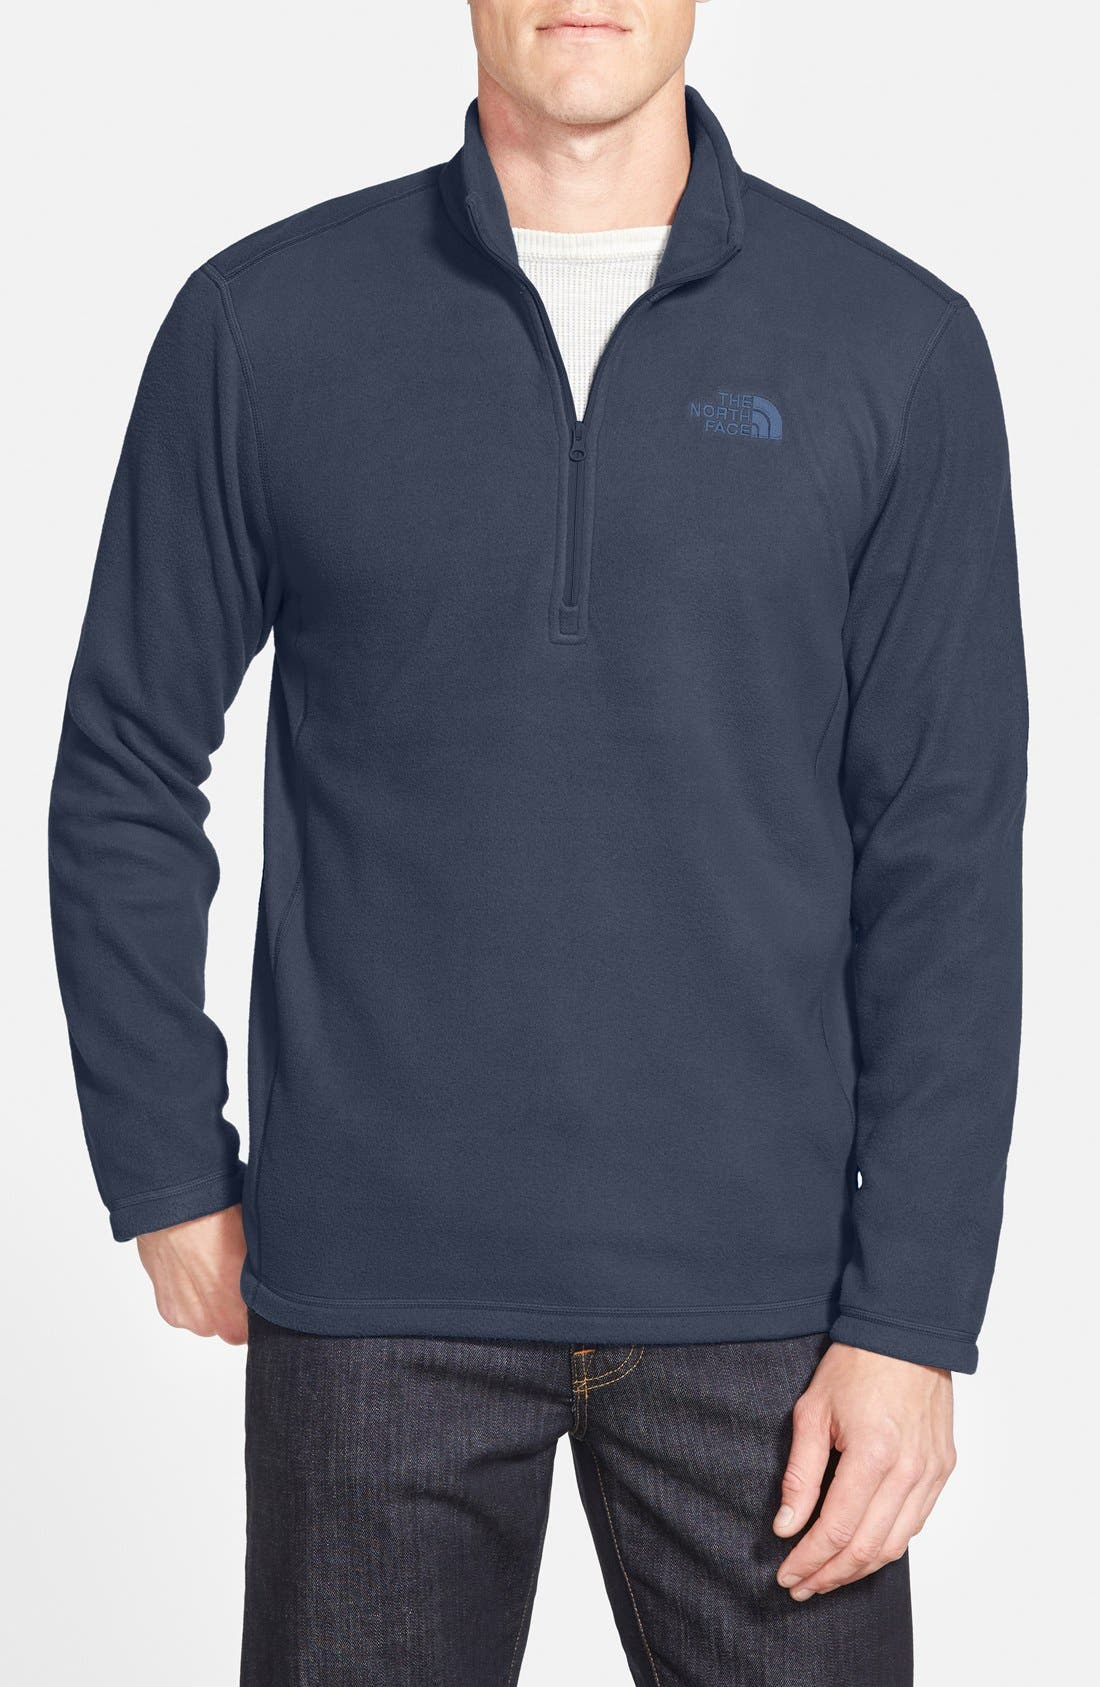 Main Image - The North Face 'TKA 100 Glacier' Quarter Zip Fleece Pullover